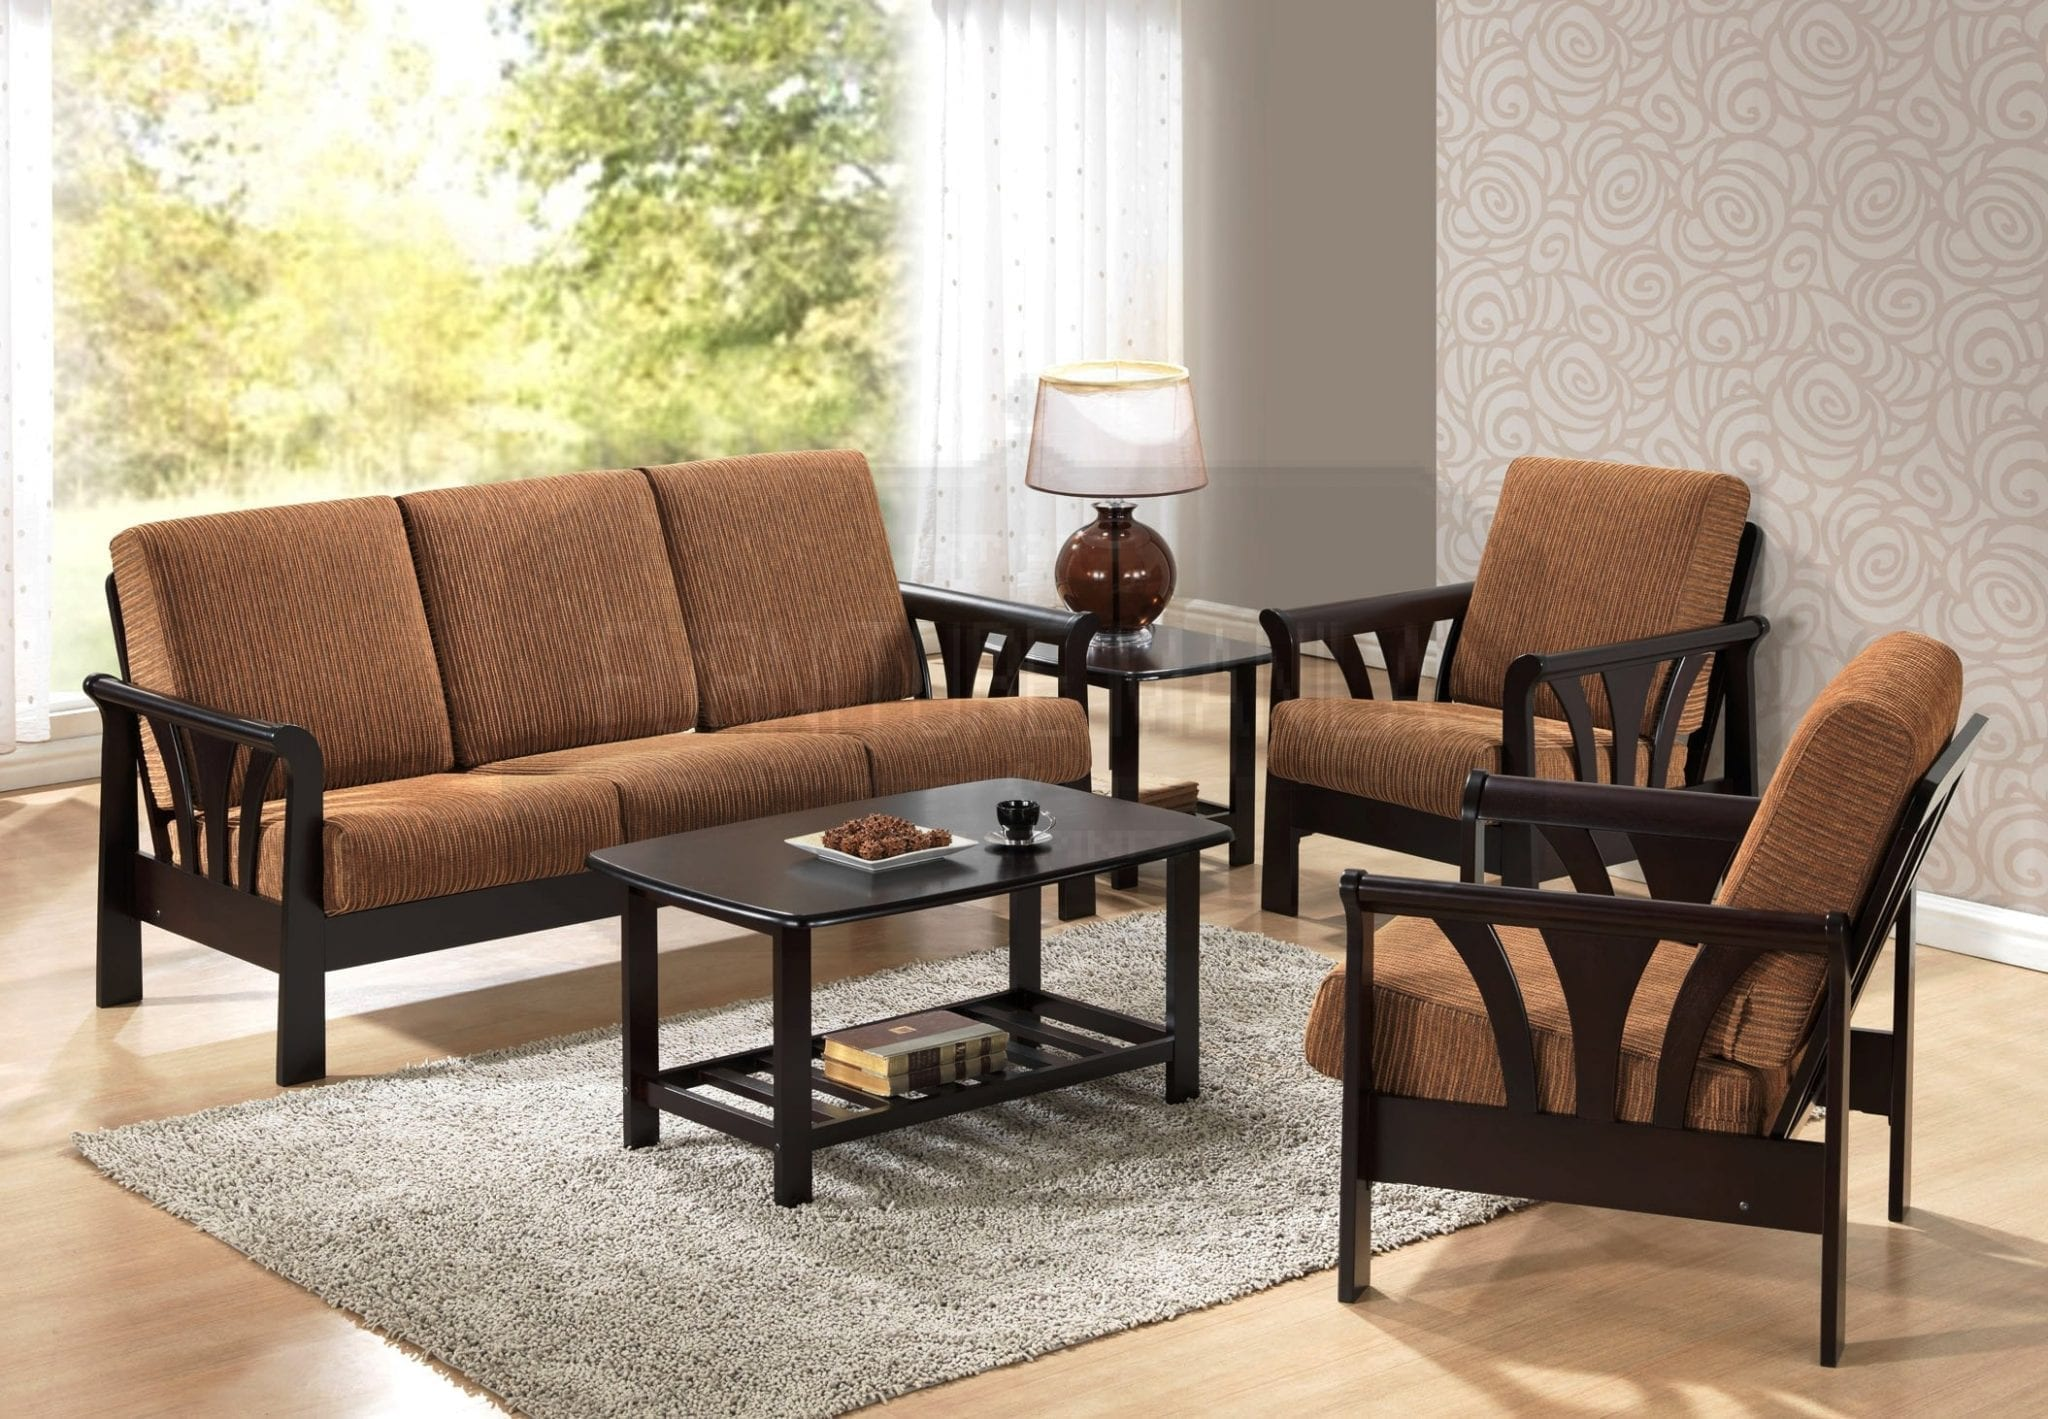 Malaysian wood sofa set philippines Home office furniture philippines